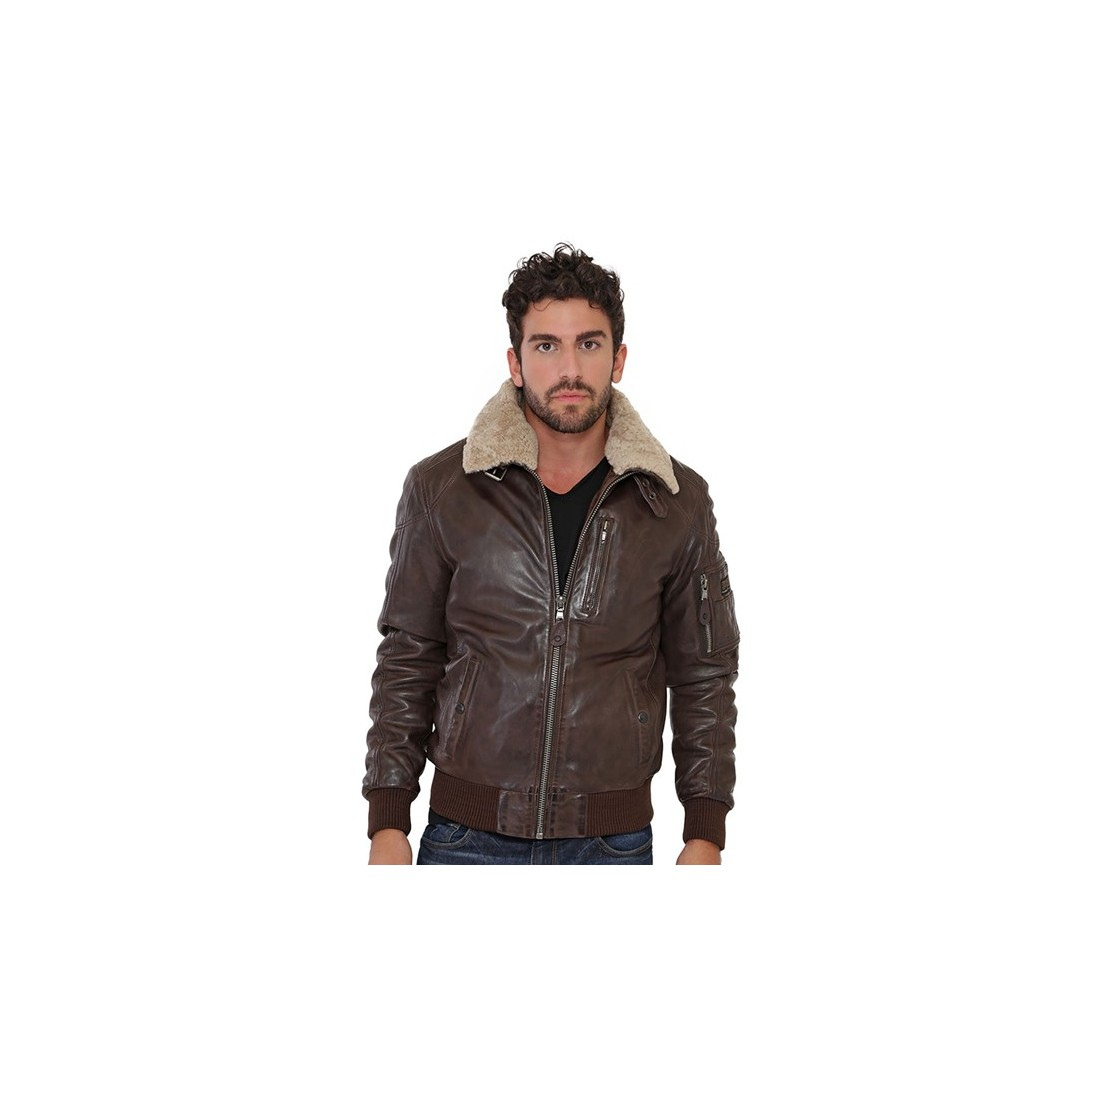 blouson squad de redskins en cuir homme marron. Black Bedroom Furniture Sets. Home Design Ideas